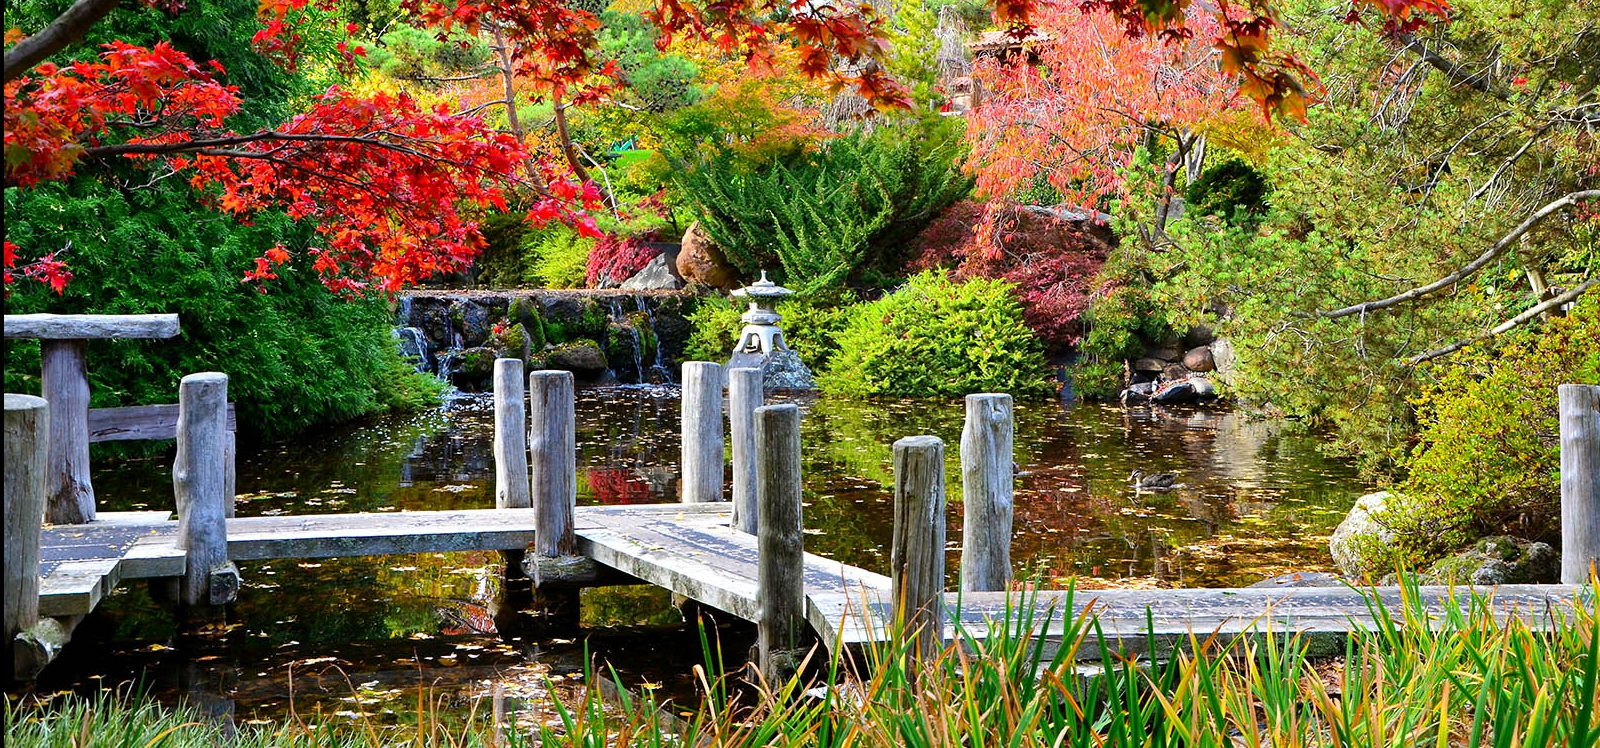 Zig Zag Bridge, Lower Pond - Japanese Gardens, RTBG